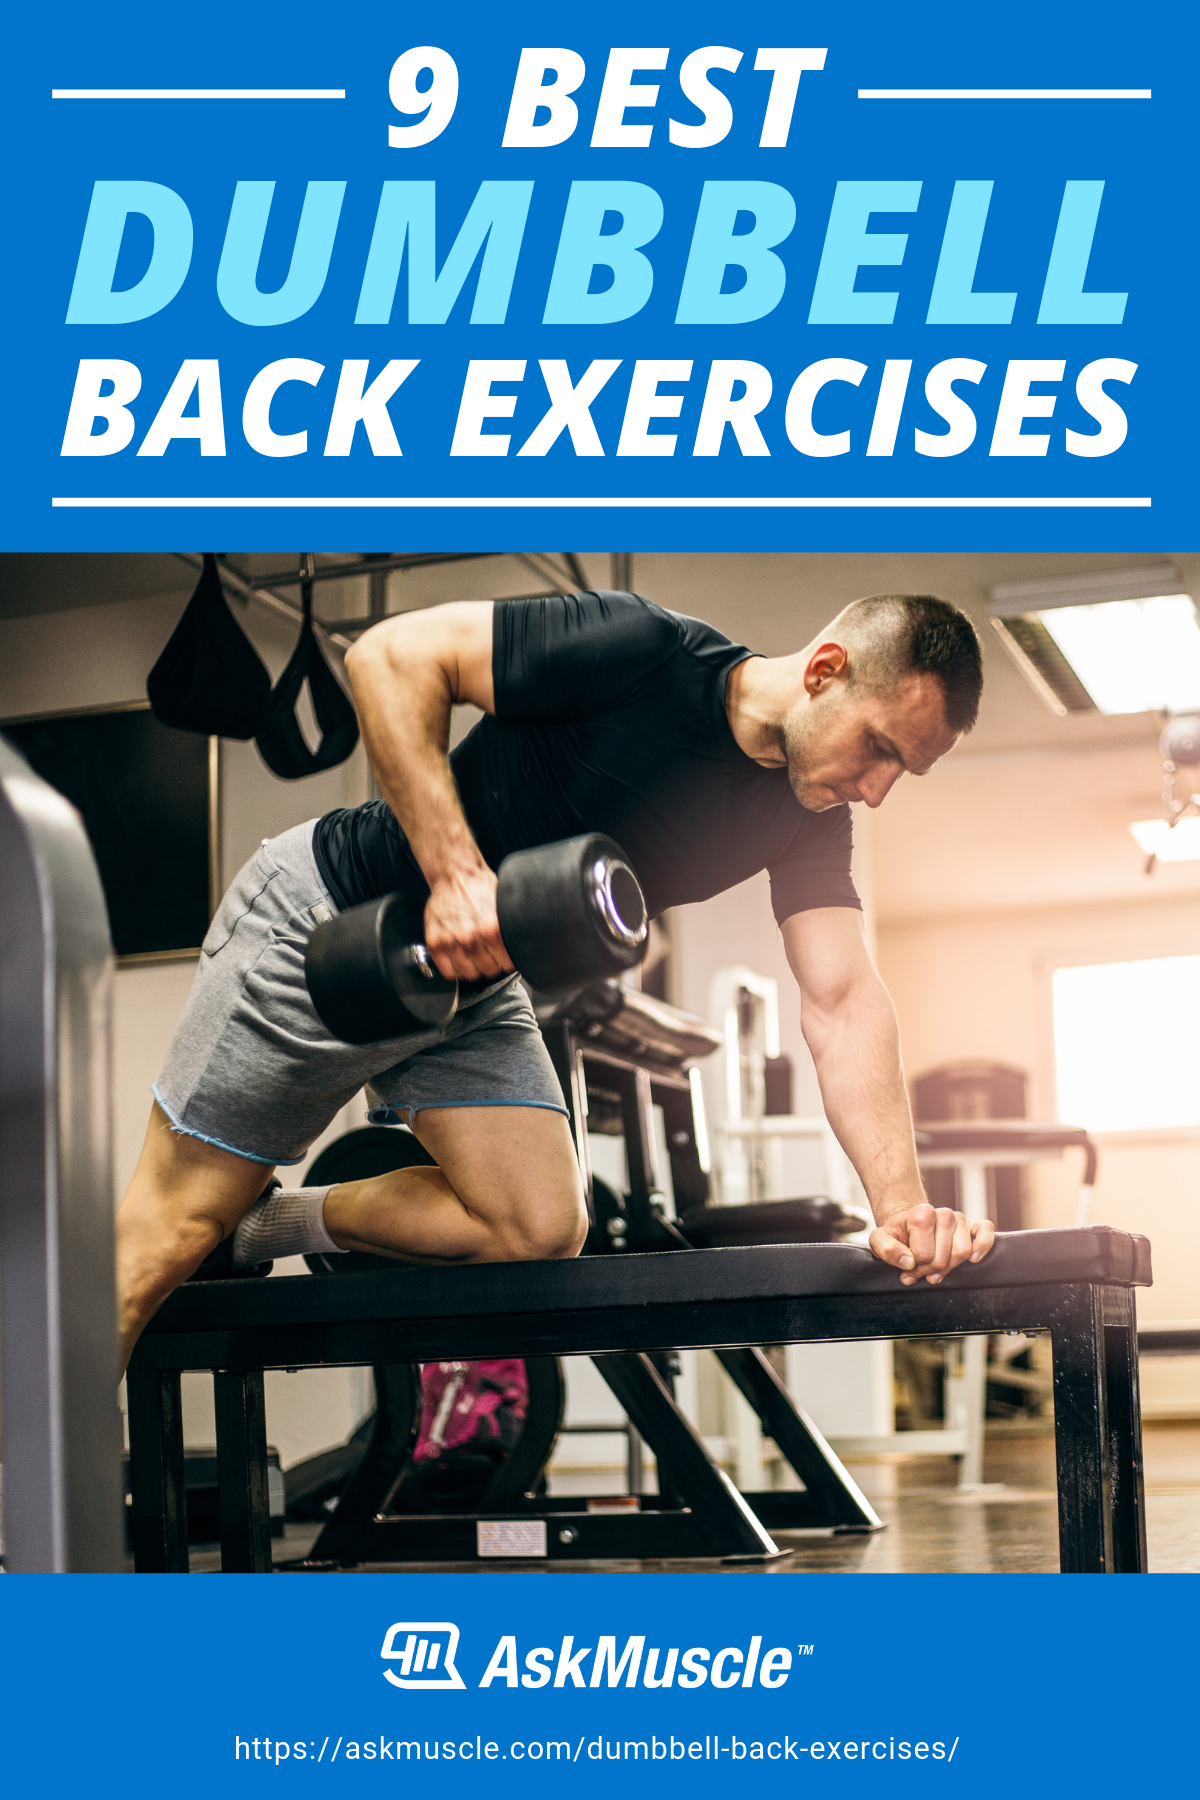 9 Dumbbell Back Exercises for a Thick, Strong Build | Ask Muscle